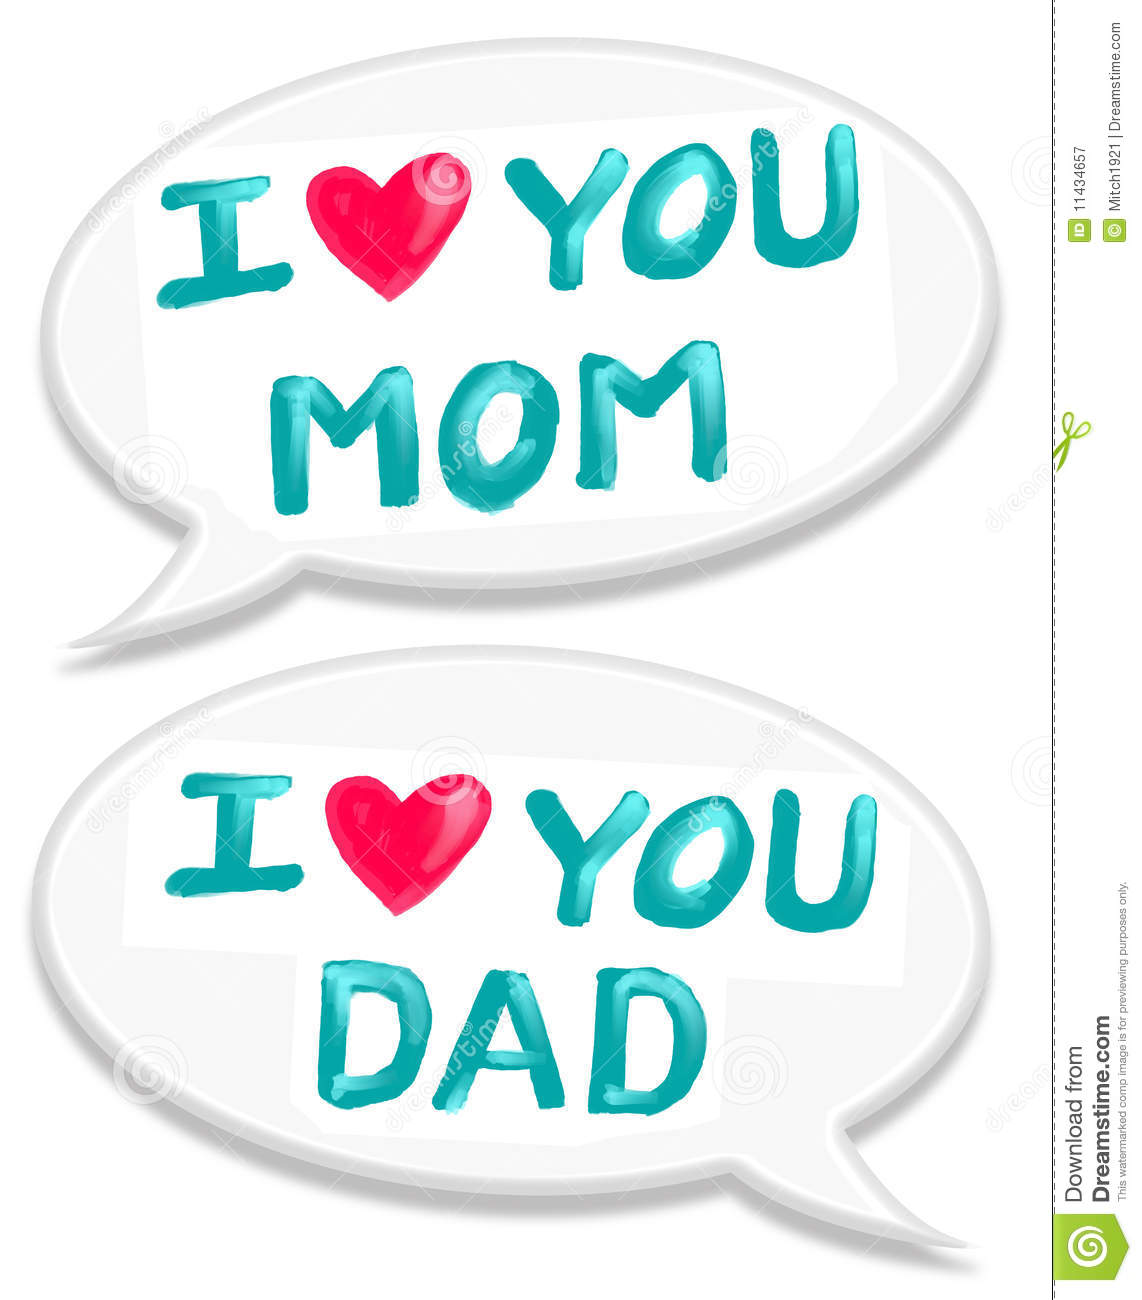 i love mom dad 11434657